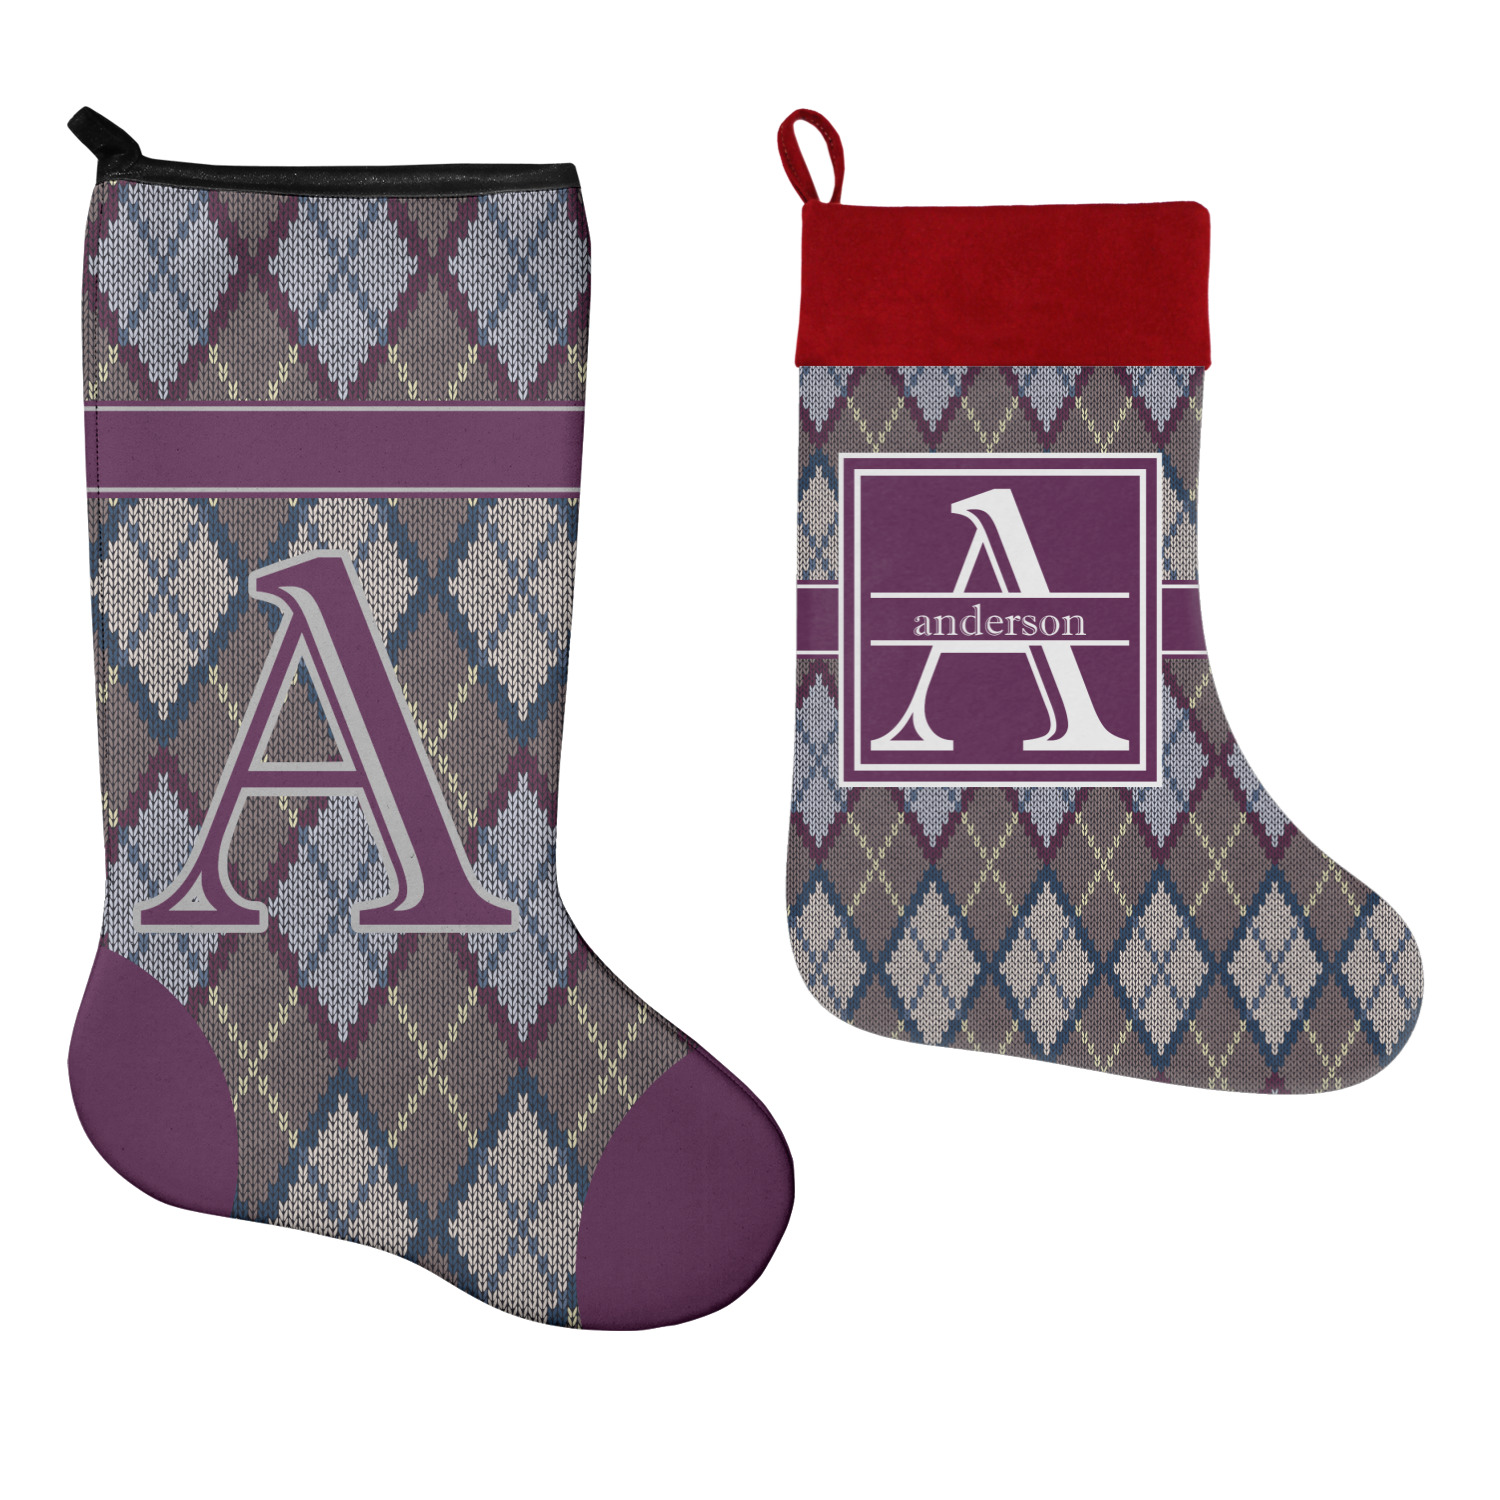 Knit Argyle Christmas Stocking (Personalized) - YouCustomizeIt